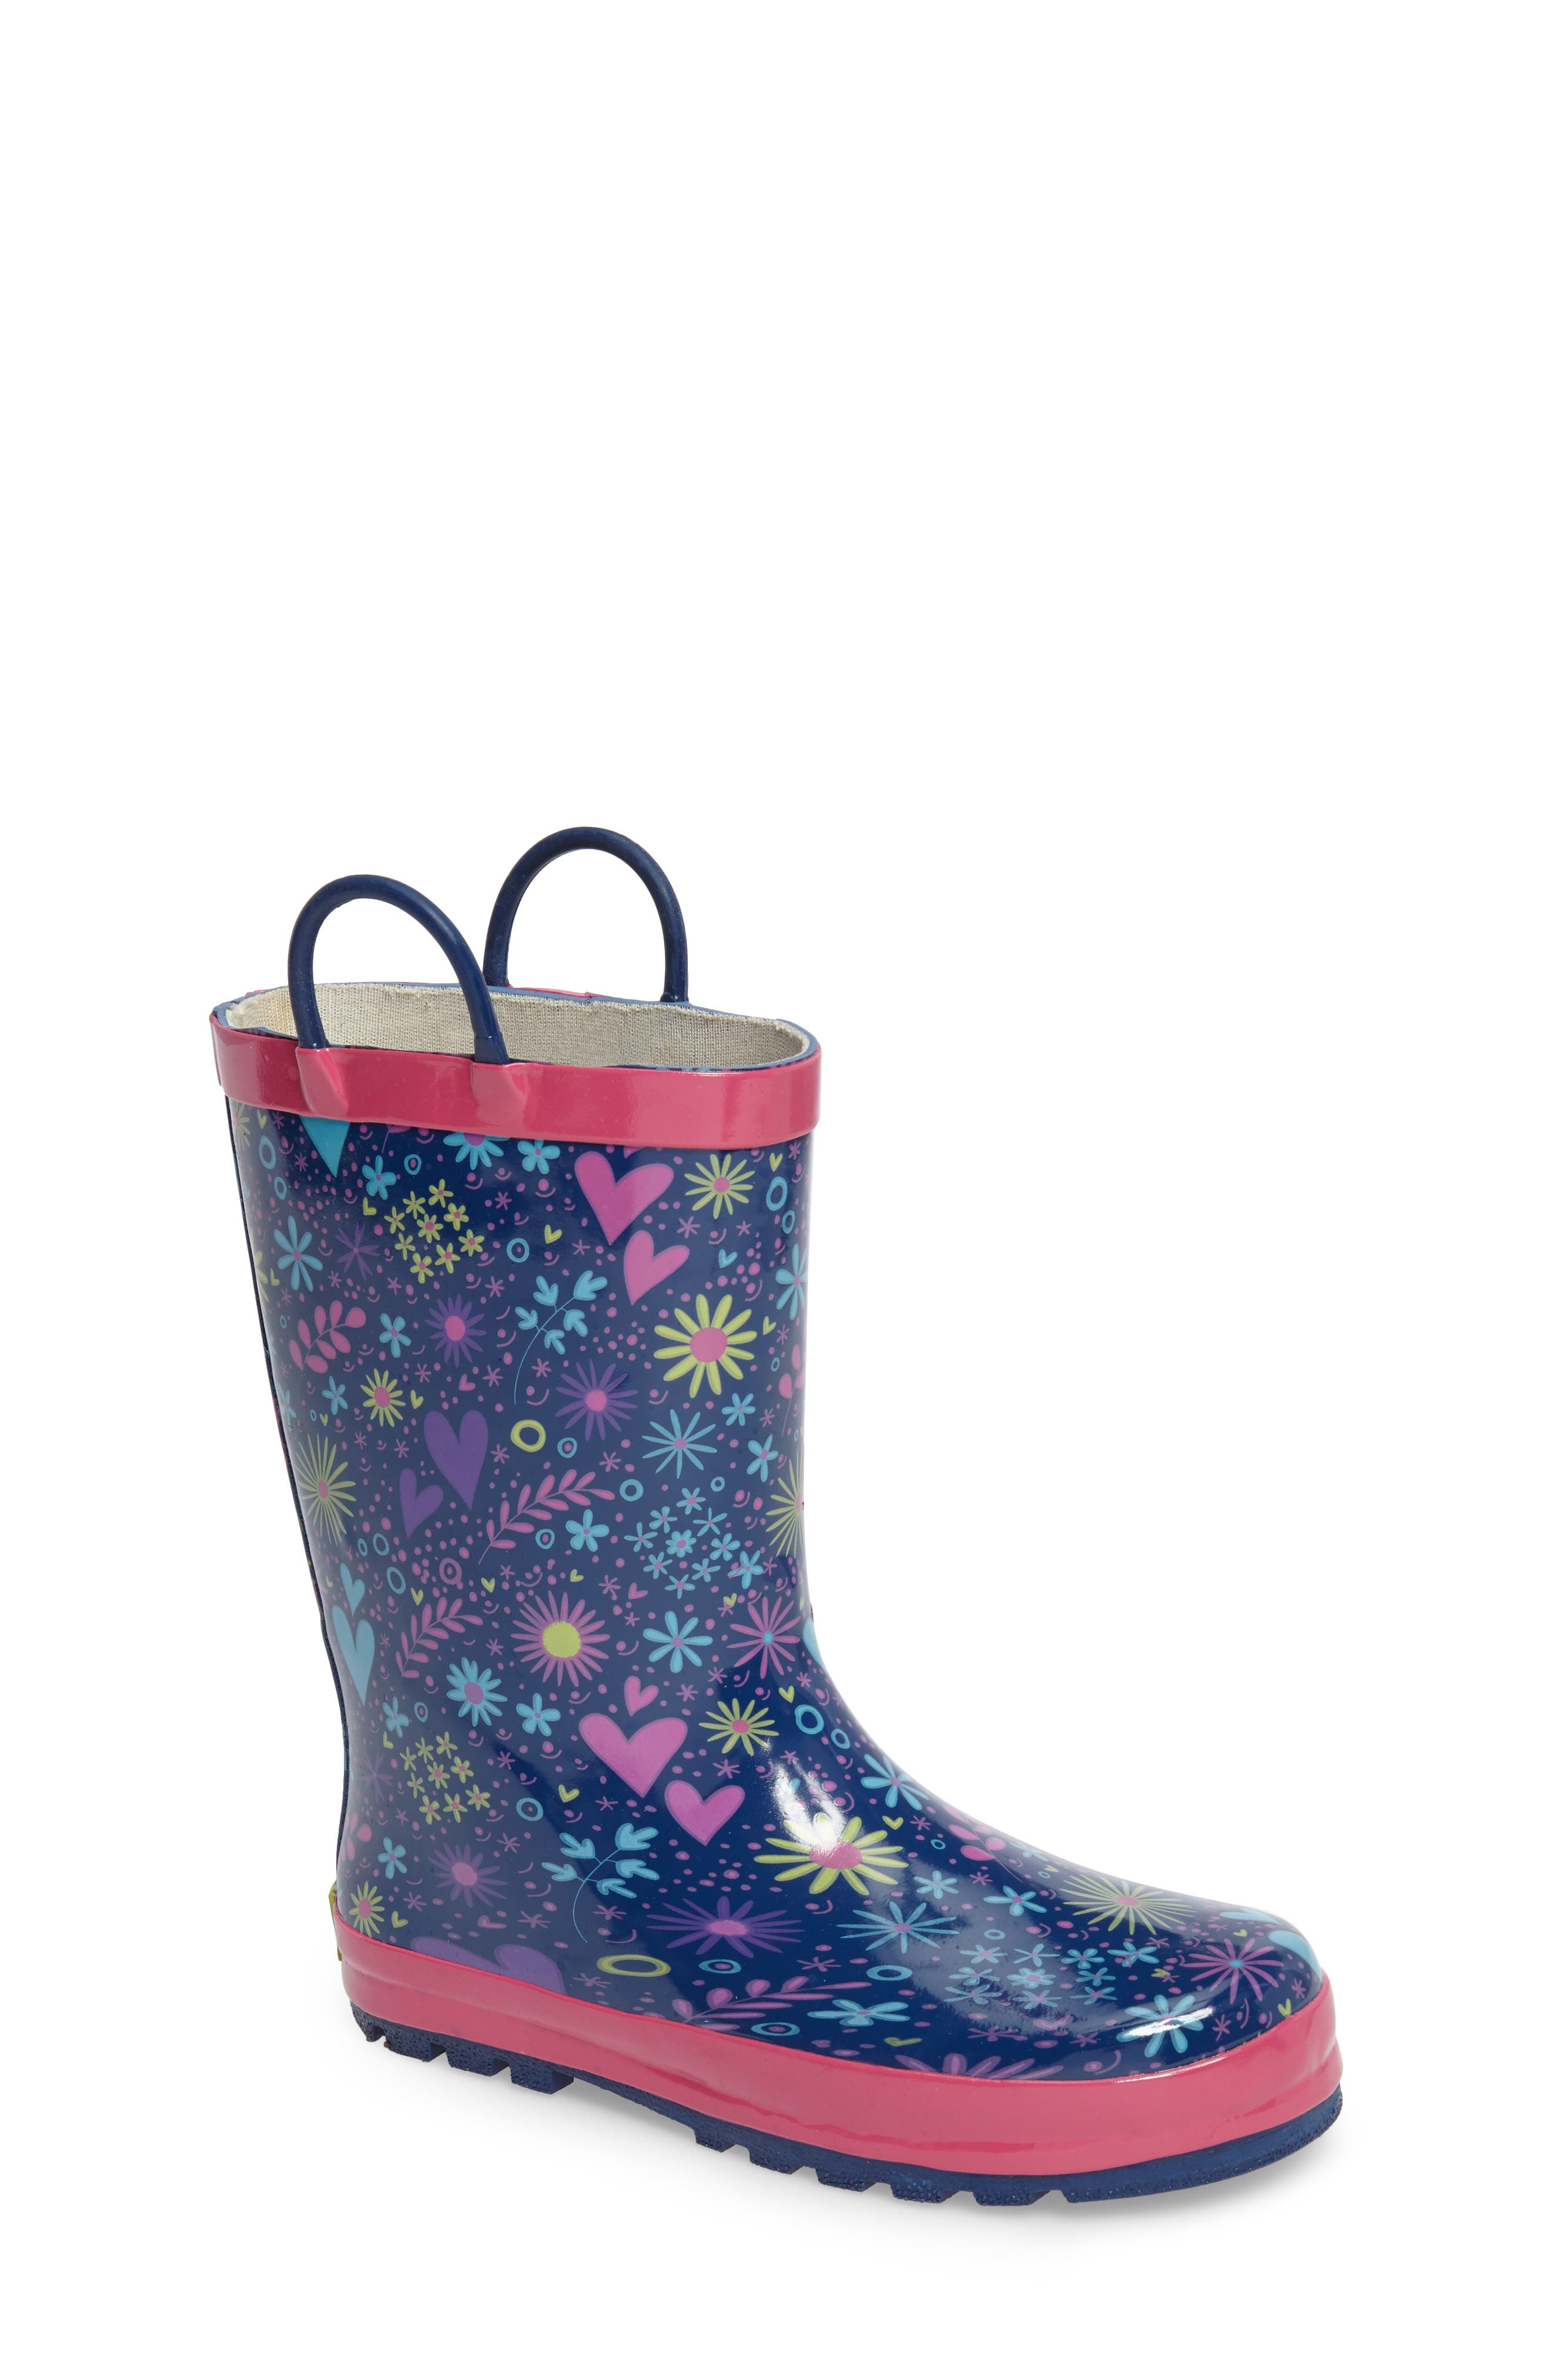 Alternate Image 1 Selected - Western Chief Willow Rain Boot (Toddler, Little Kid & Big Kid)